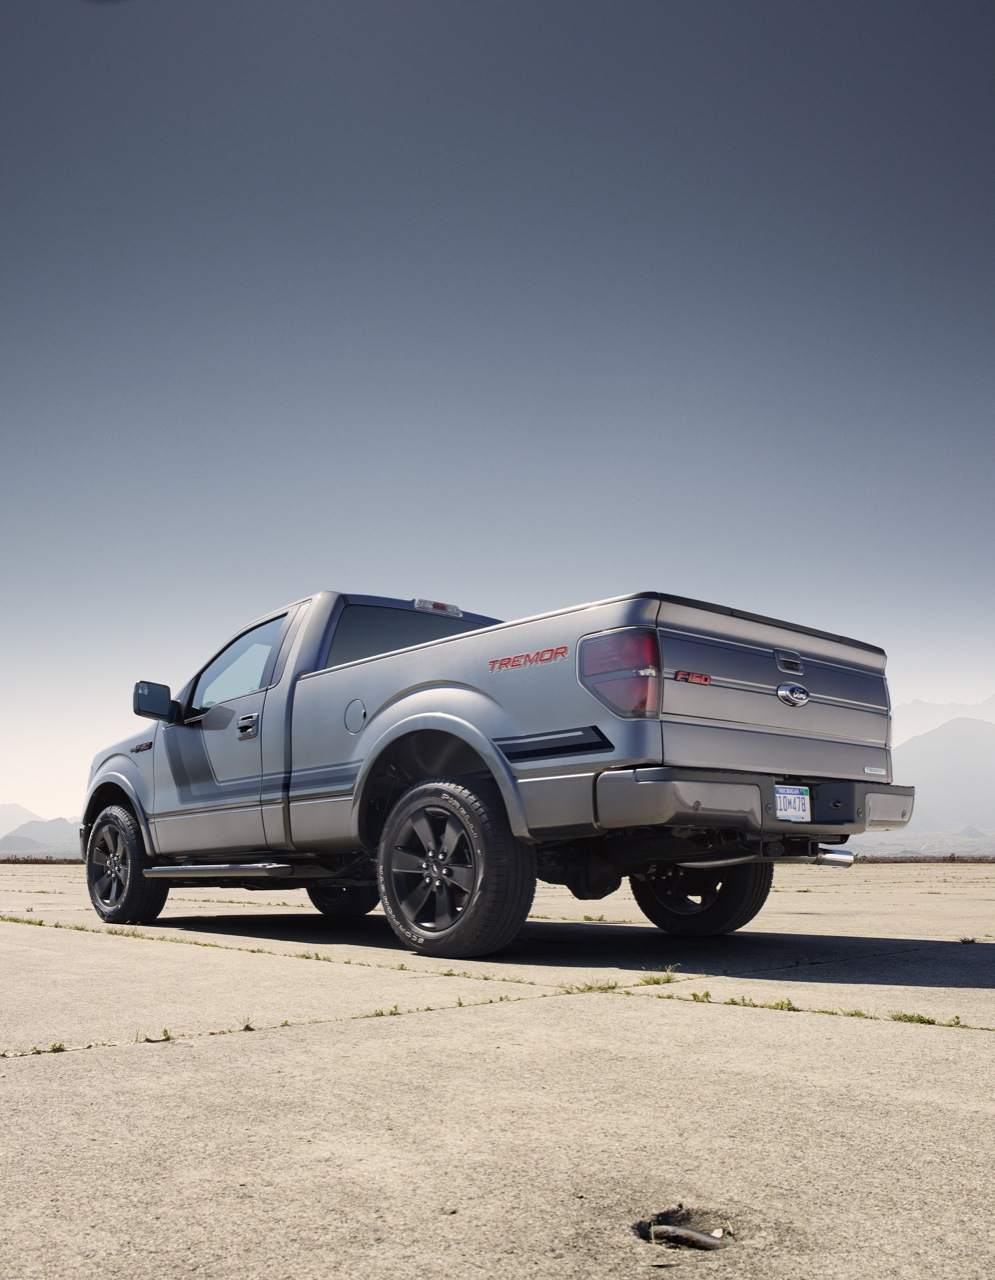 150 tremor 2014 ford - photo #23